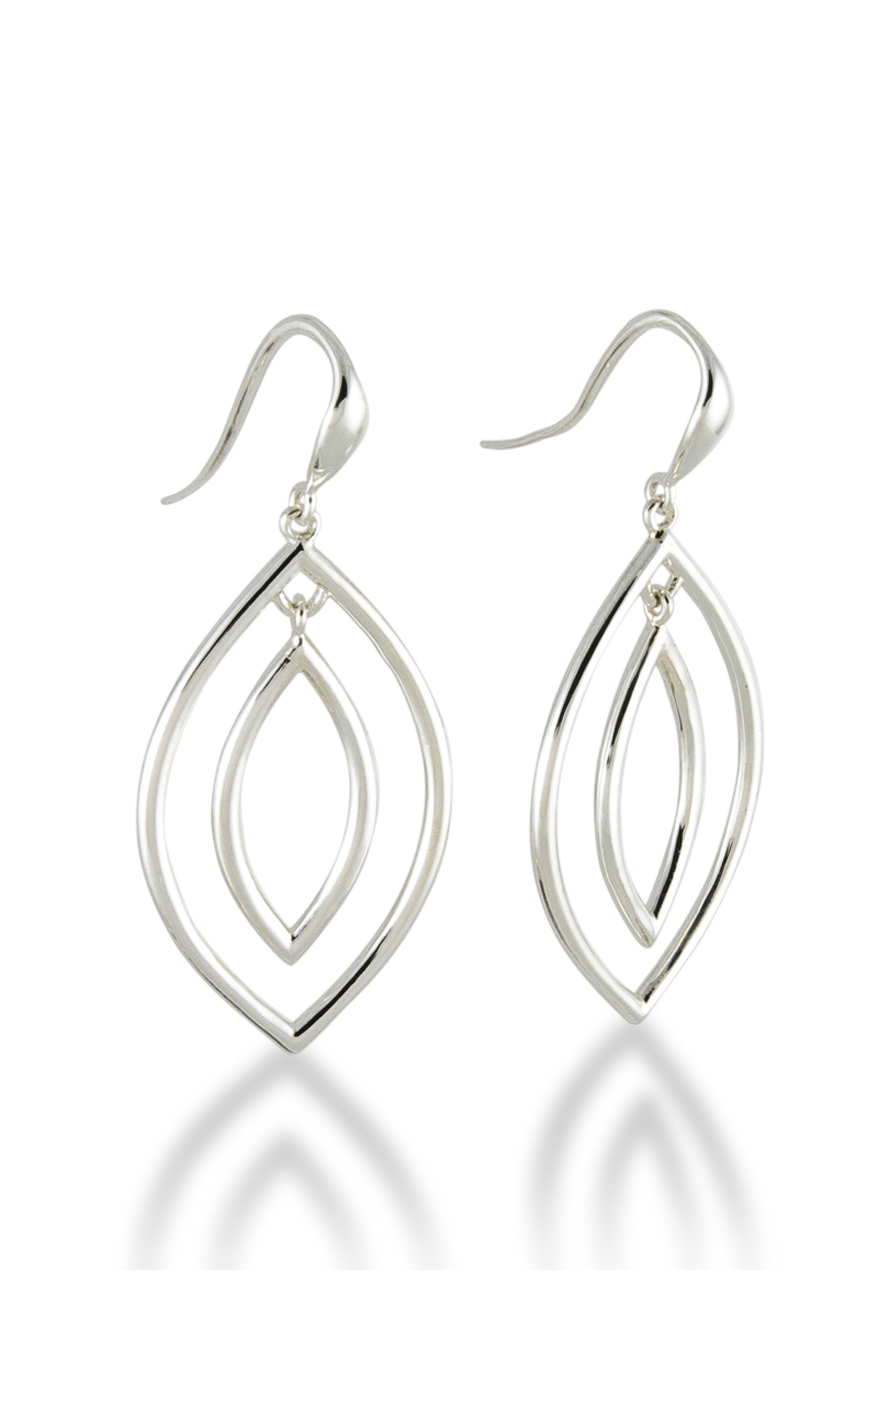 Zina Contemporary Earrings B1723 product image